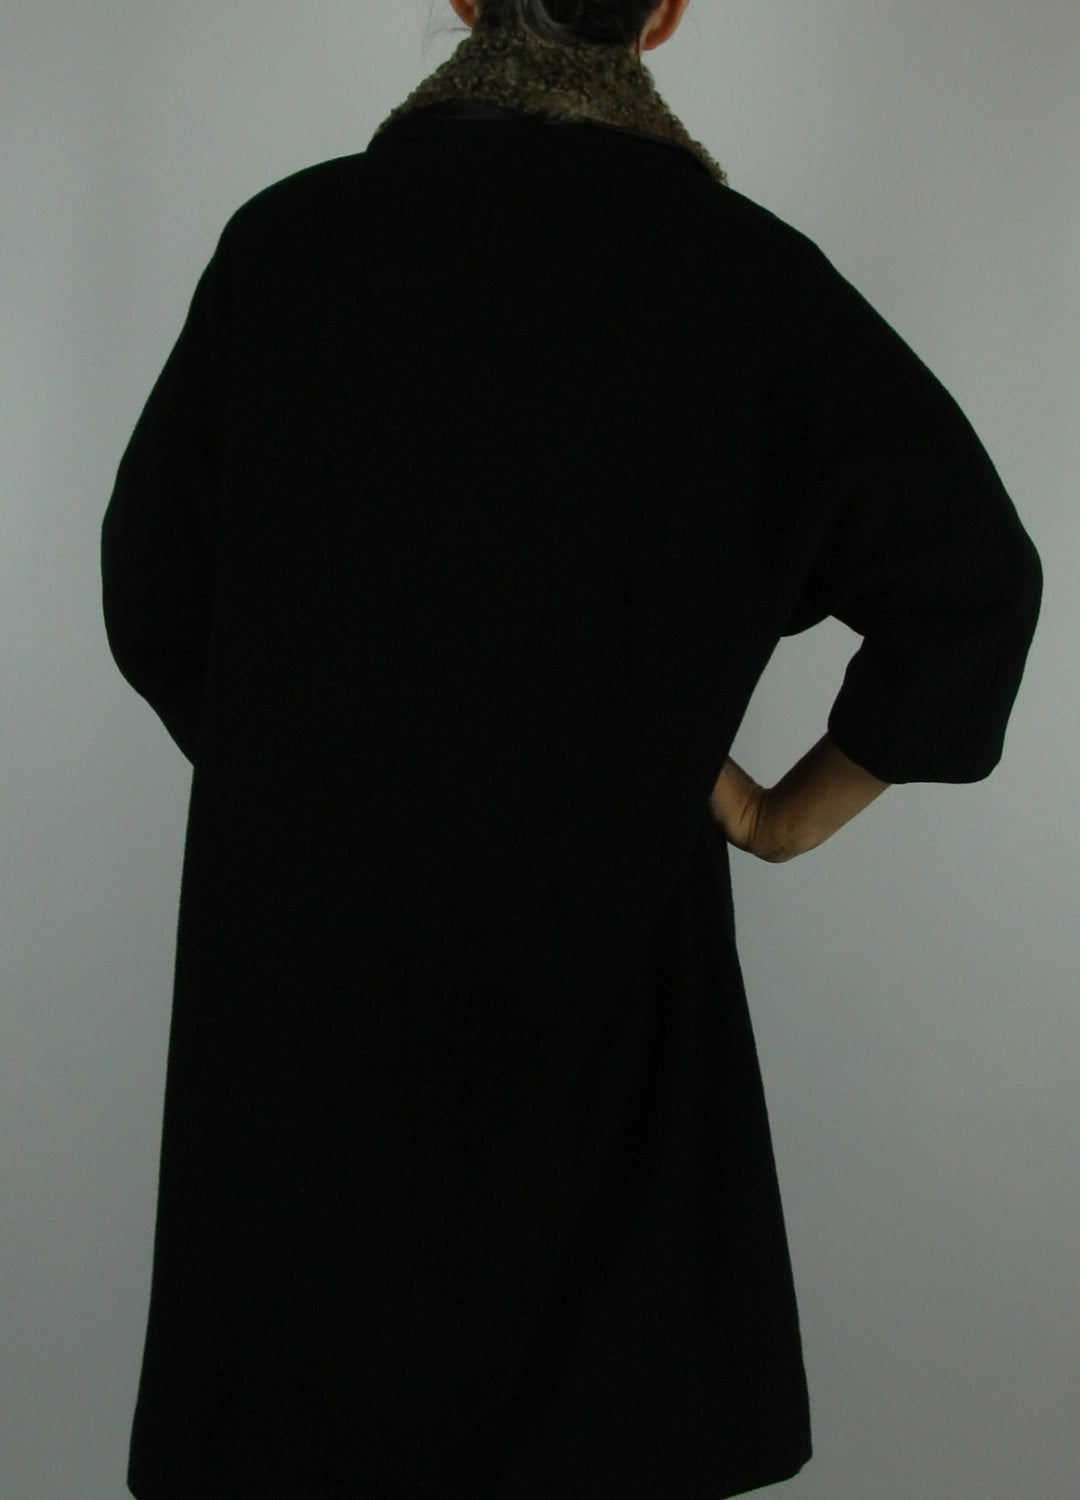 BLACK MELTON clutch coat cropped sleeves ASTRAKHAN collar S M